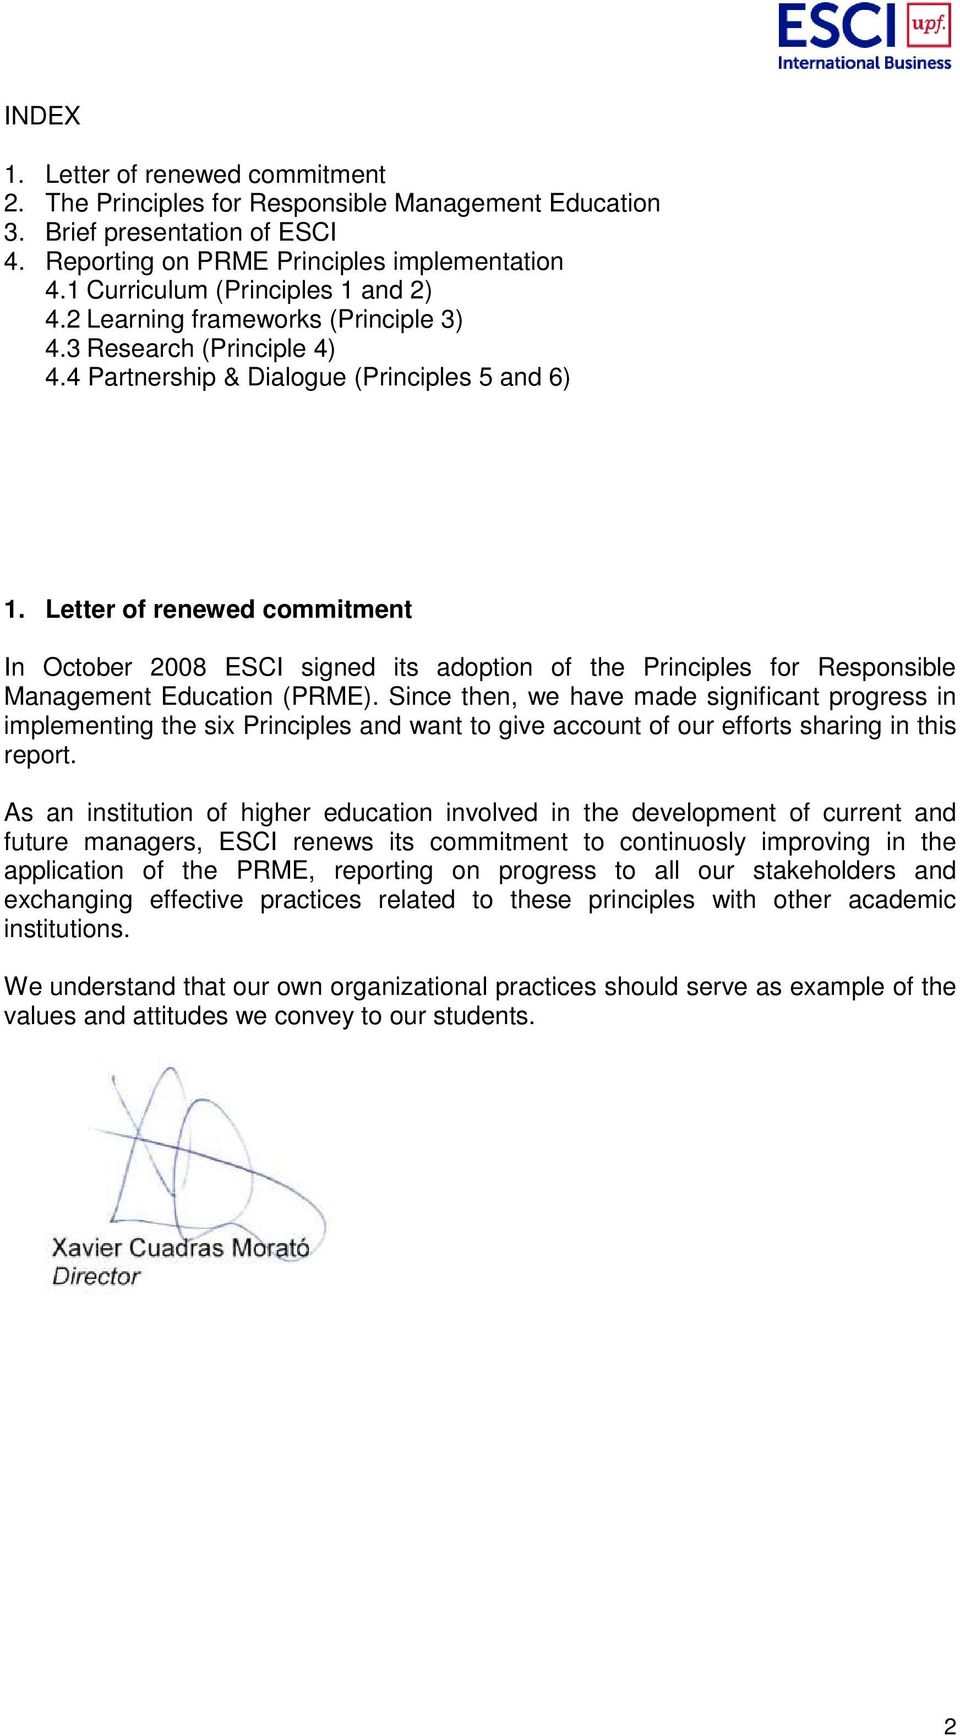 Letter of renewed commitment In October 2008 ESCI signed its adoption of the Principles for Responsible Management Education (PRME).